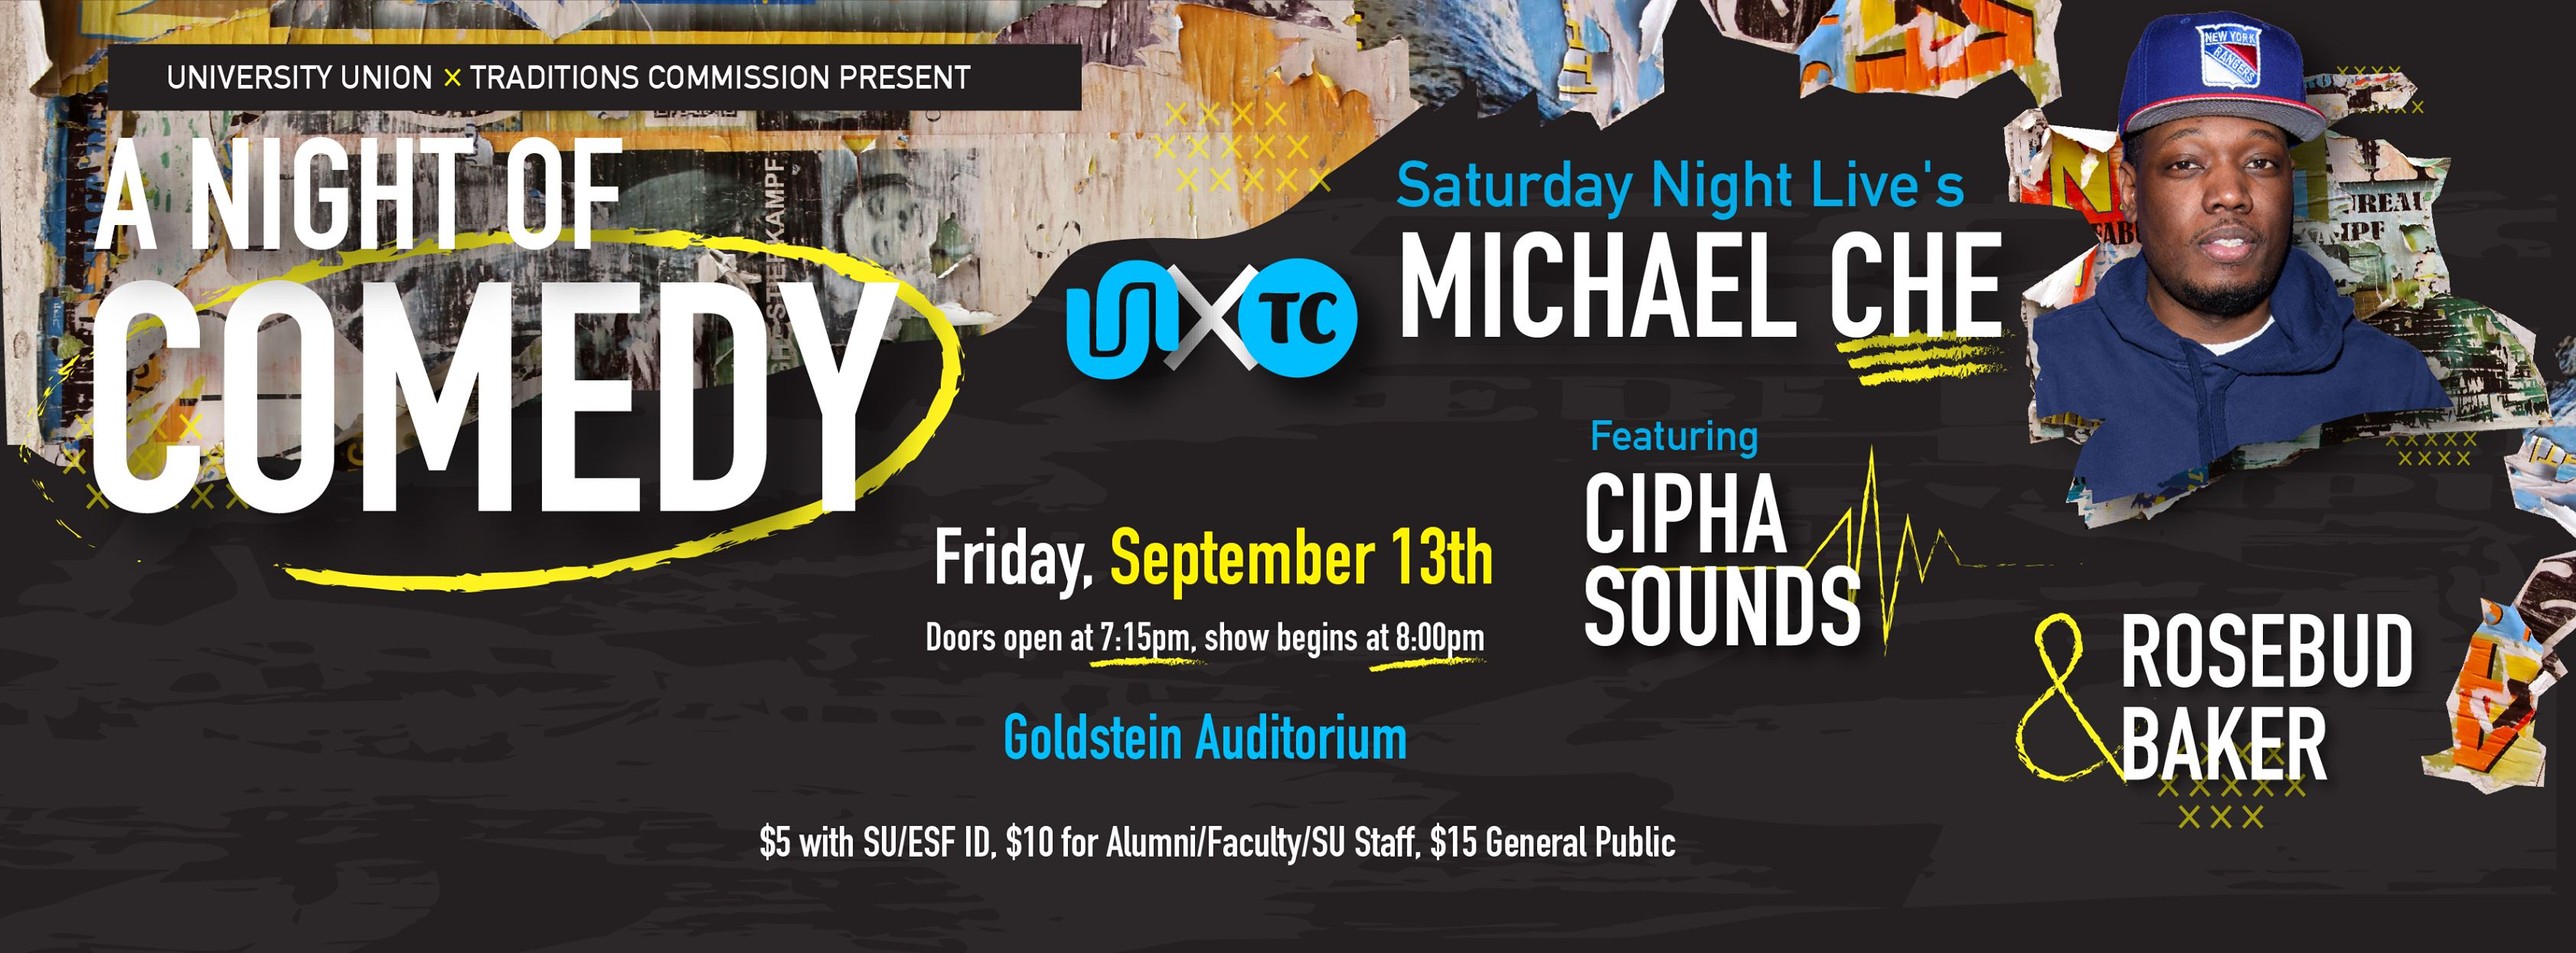 Syracuse University Union presents Michael Che Michael Che with Cipha Sounds and Rosebud Baker